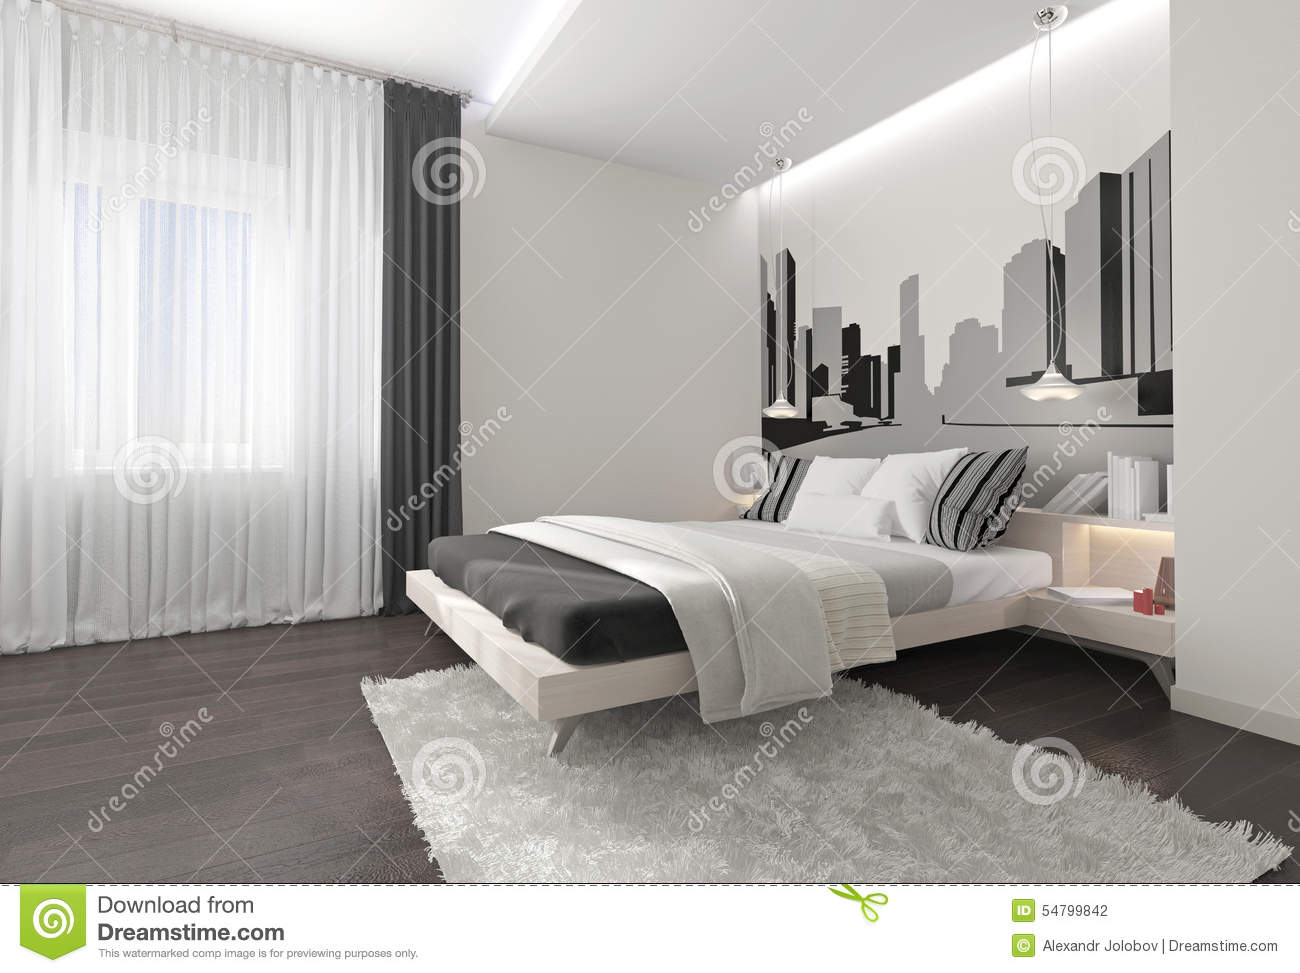 placard chambre avec rideau avec des id es int ressantes pour la conception de la. Black Bedroom Furniture Sets. Home Design Ideas